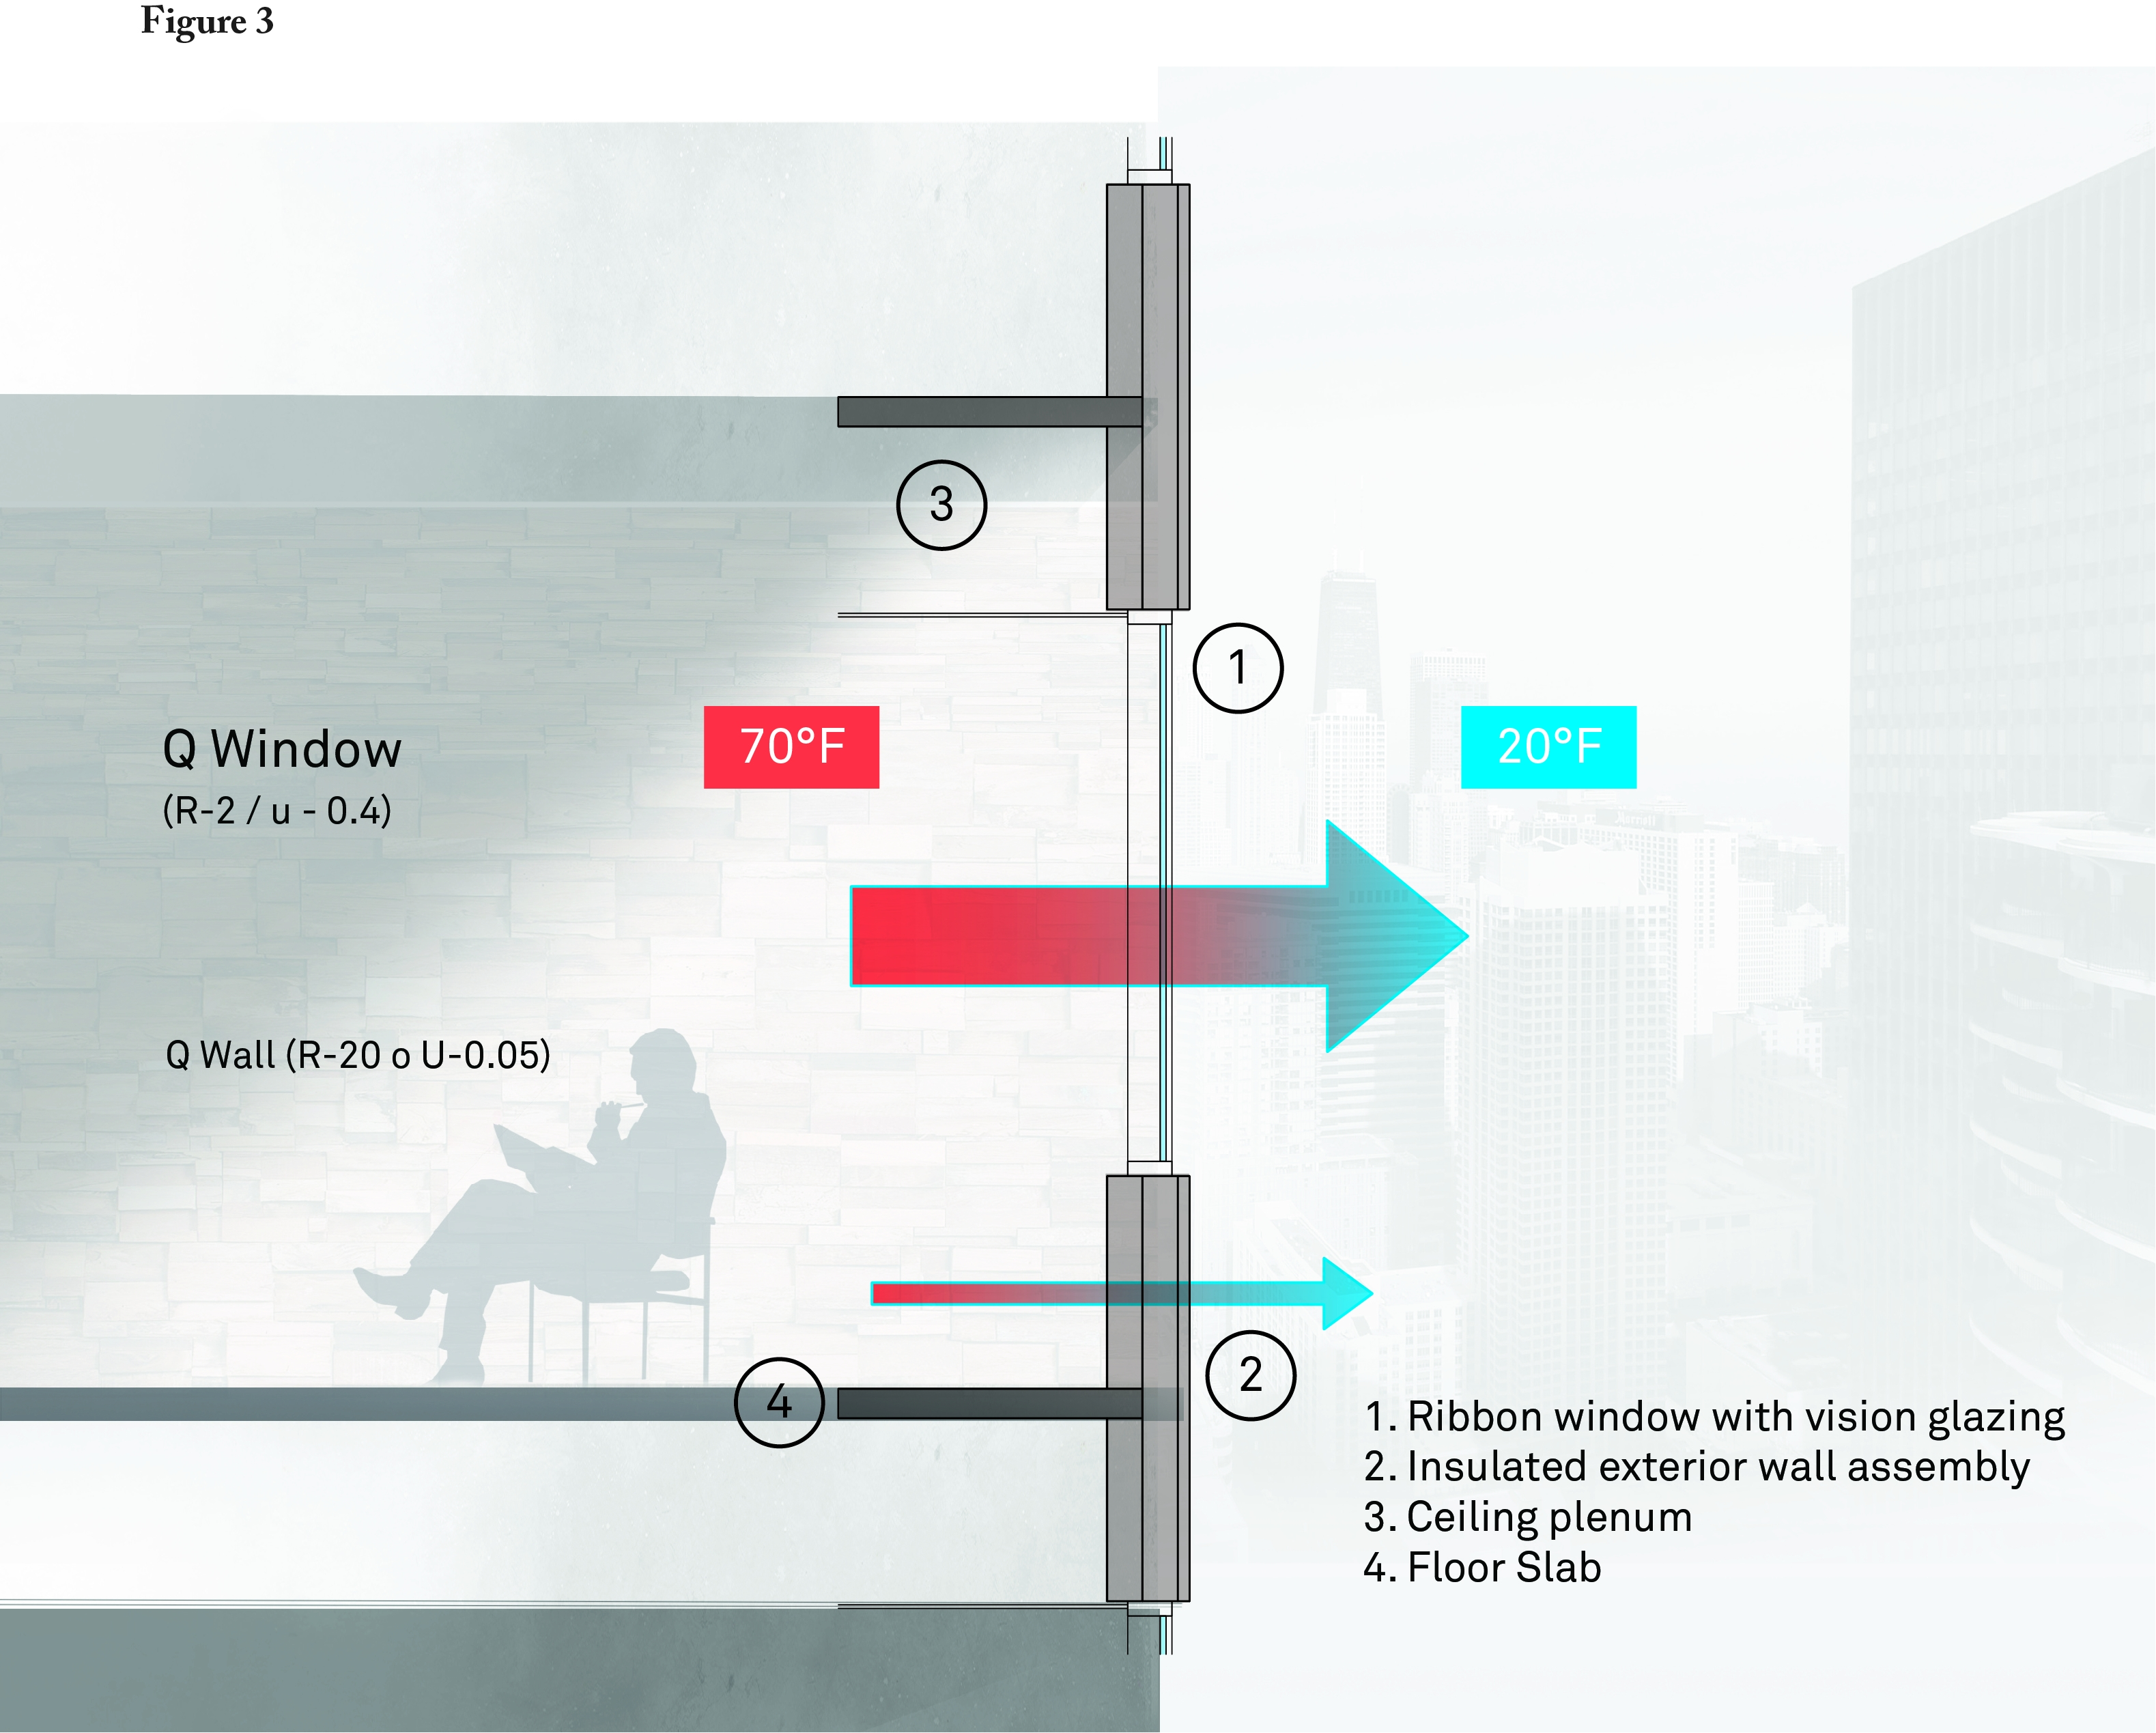 Heat loss diagram for Glass Building Design.